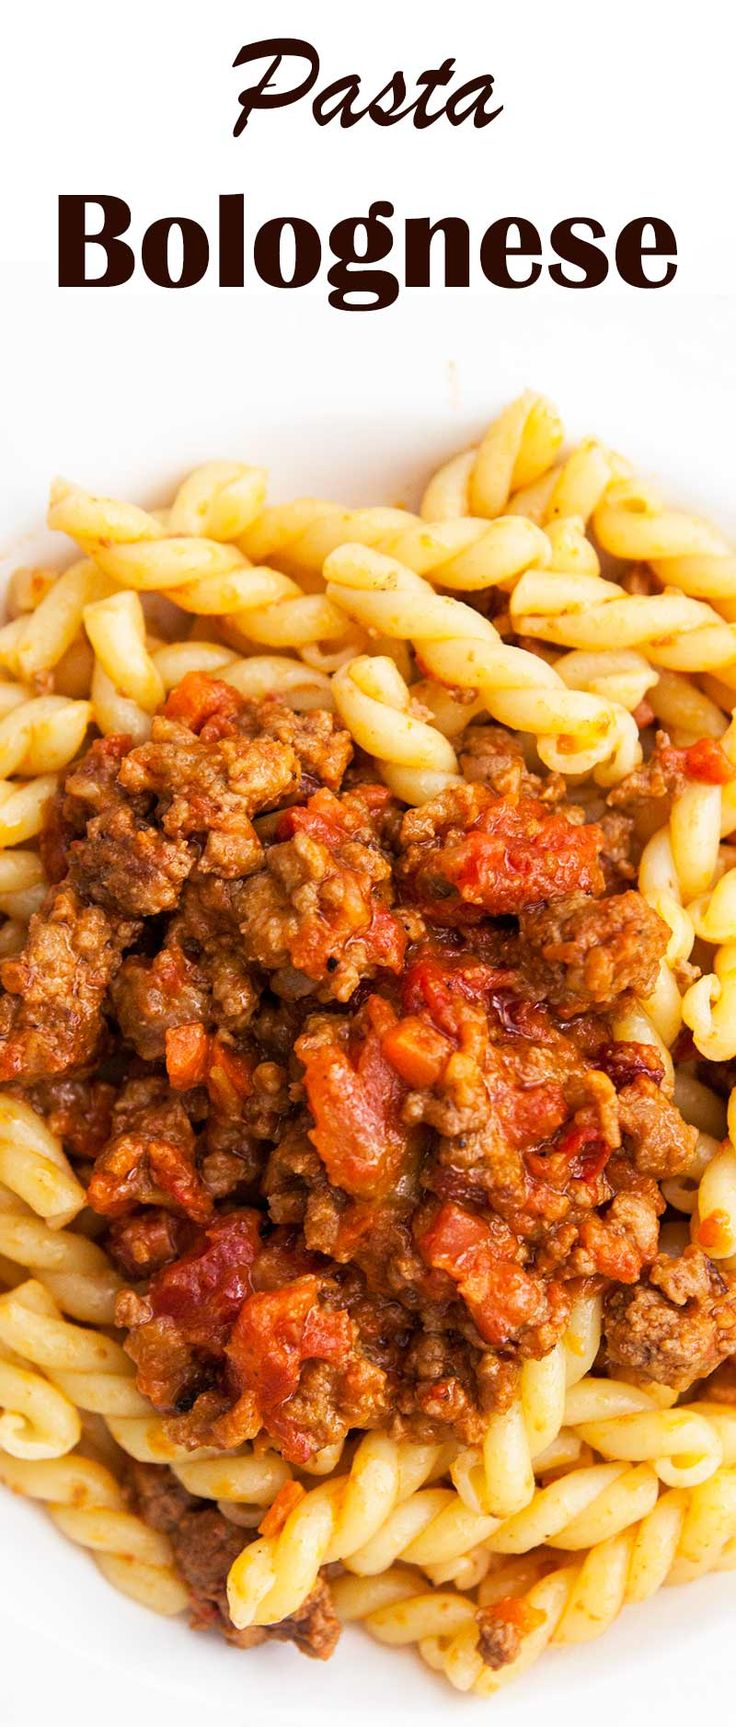 Bolognese Meat Sauce ~ Classic Italian Bolognese meat sauce! Ground beef, pork, and Italian sausage, simmered for hours in a base of onion, celery, carrot, pancetta, and tomatoes.  Seasoned with cloves, cinnamon, salt and pepper. ~ SimplyRecipes.com